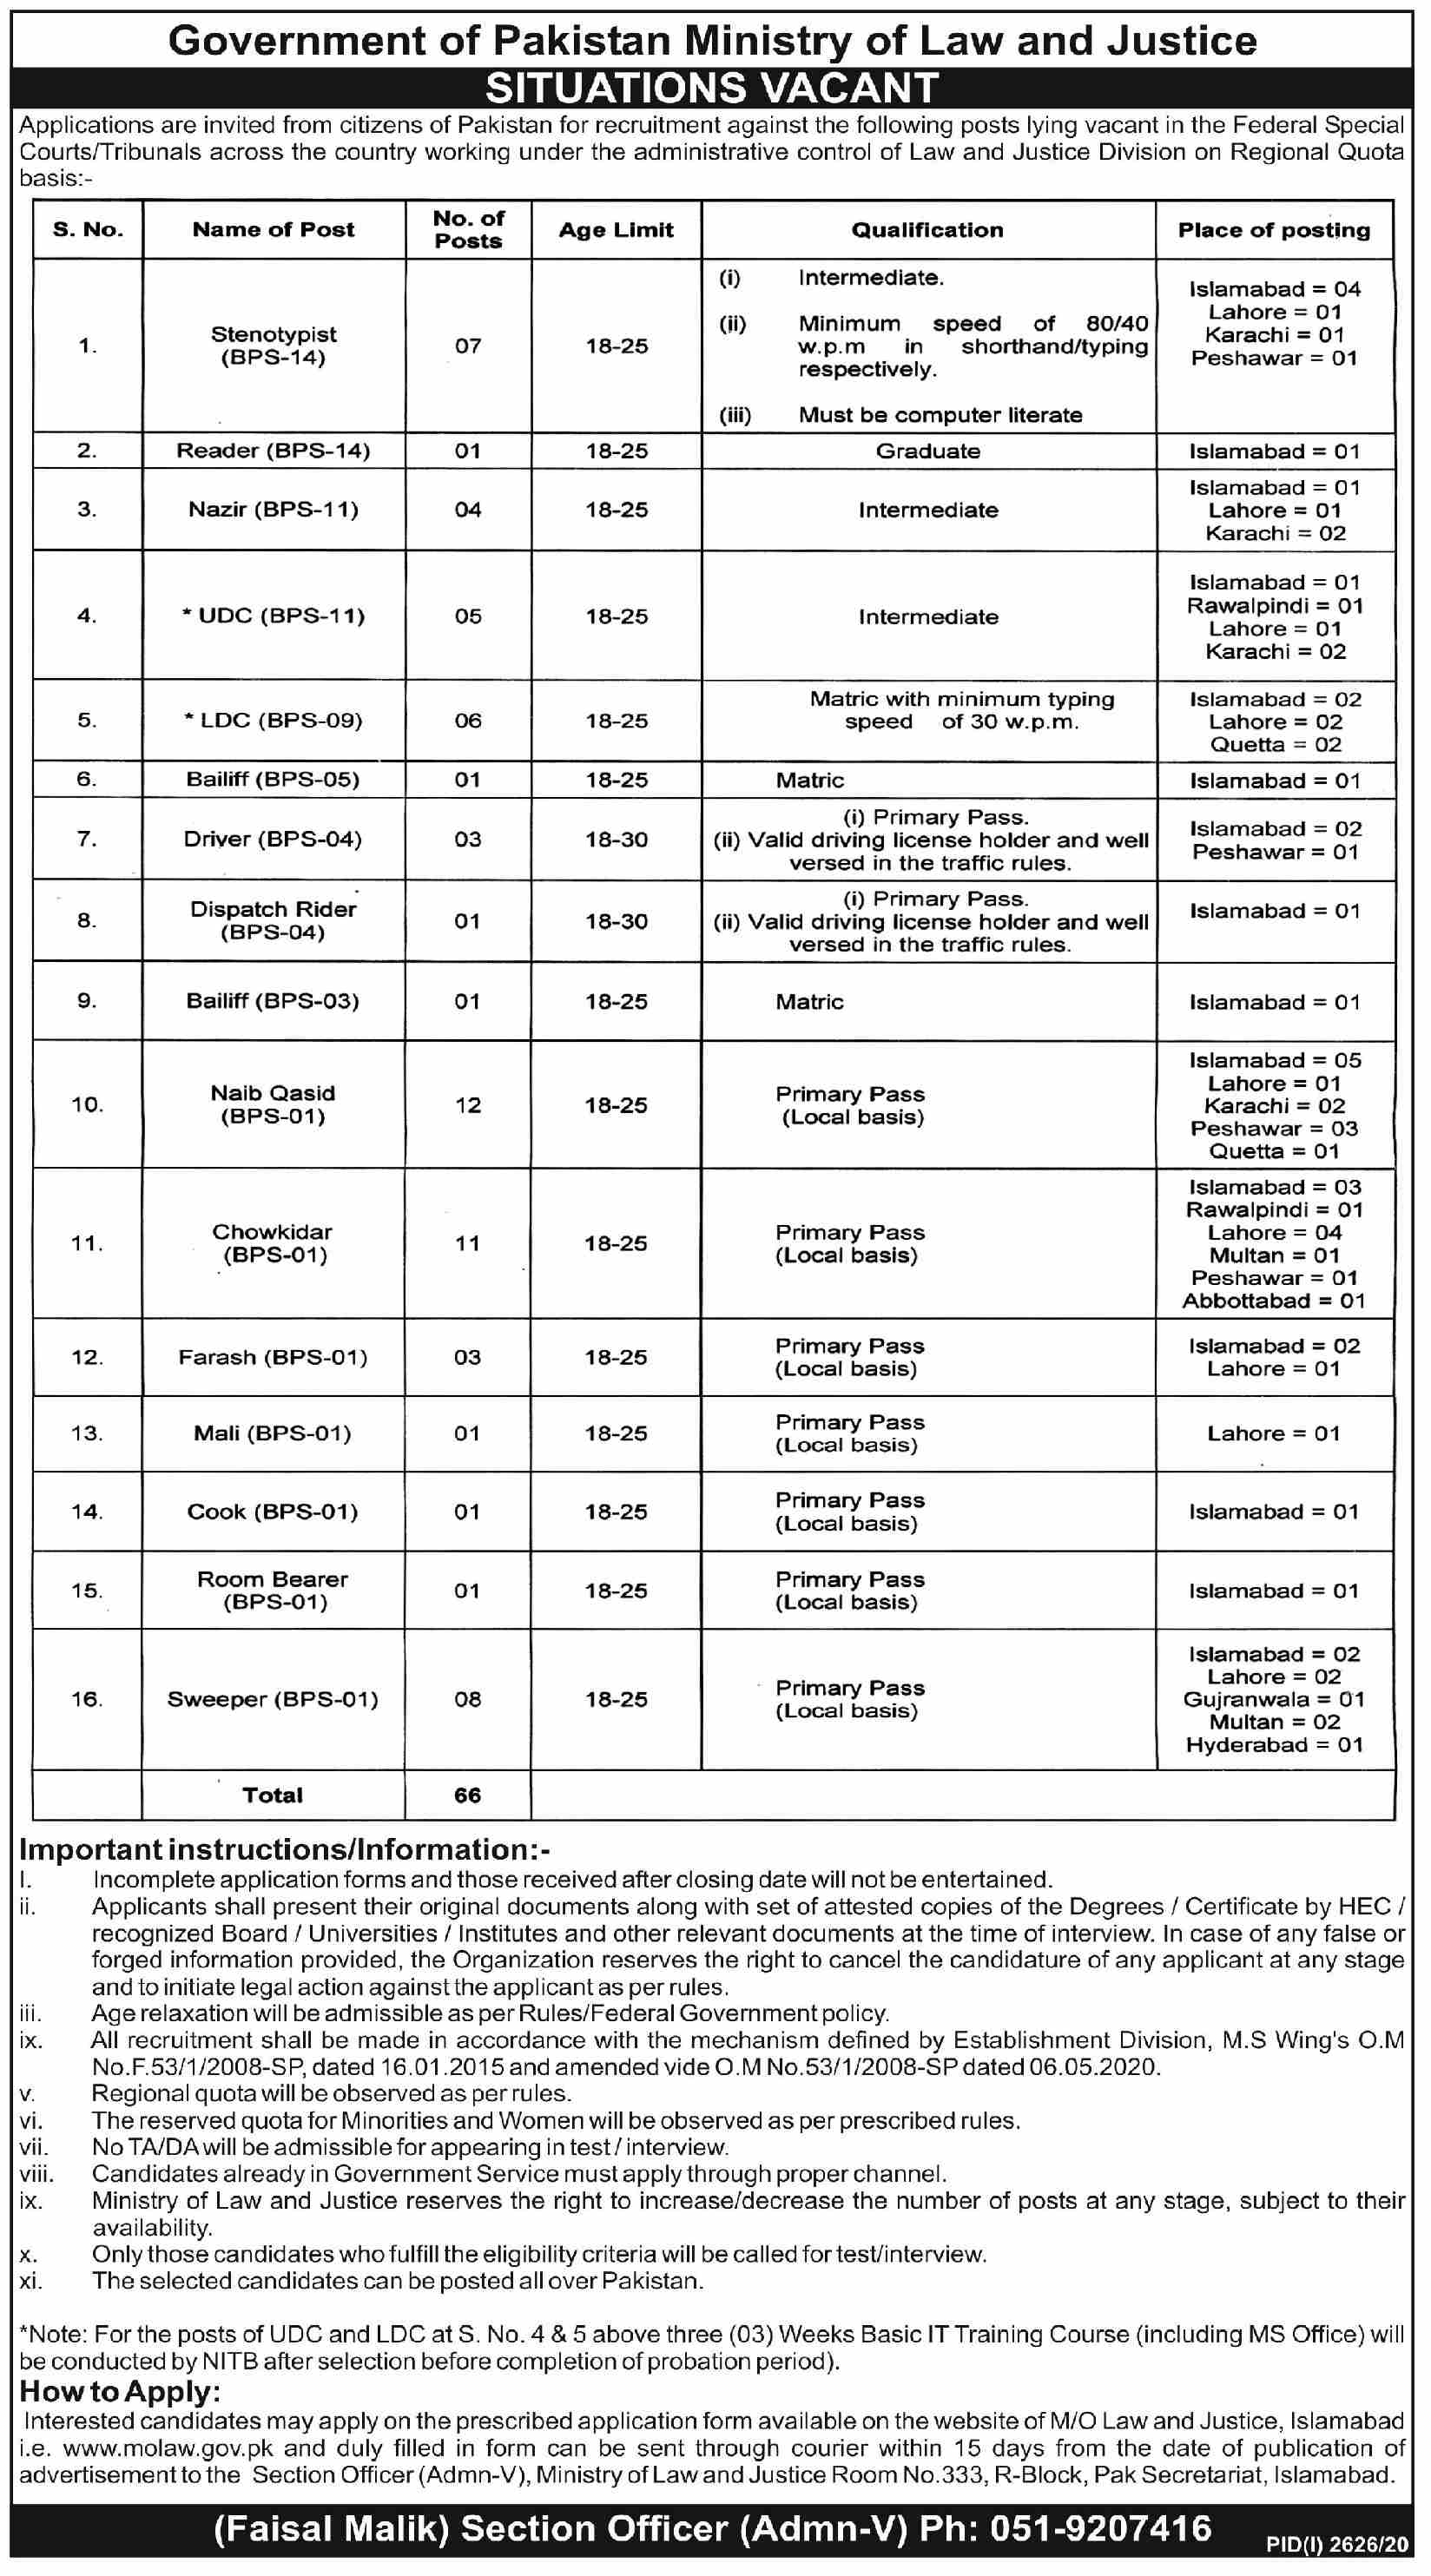 Ministry Of Law & Justice jobs newspaper ad for Dispatch Rider in Islamabad